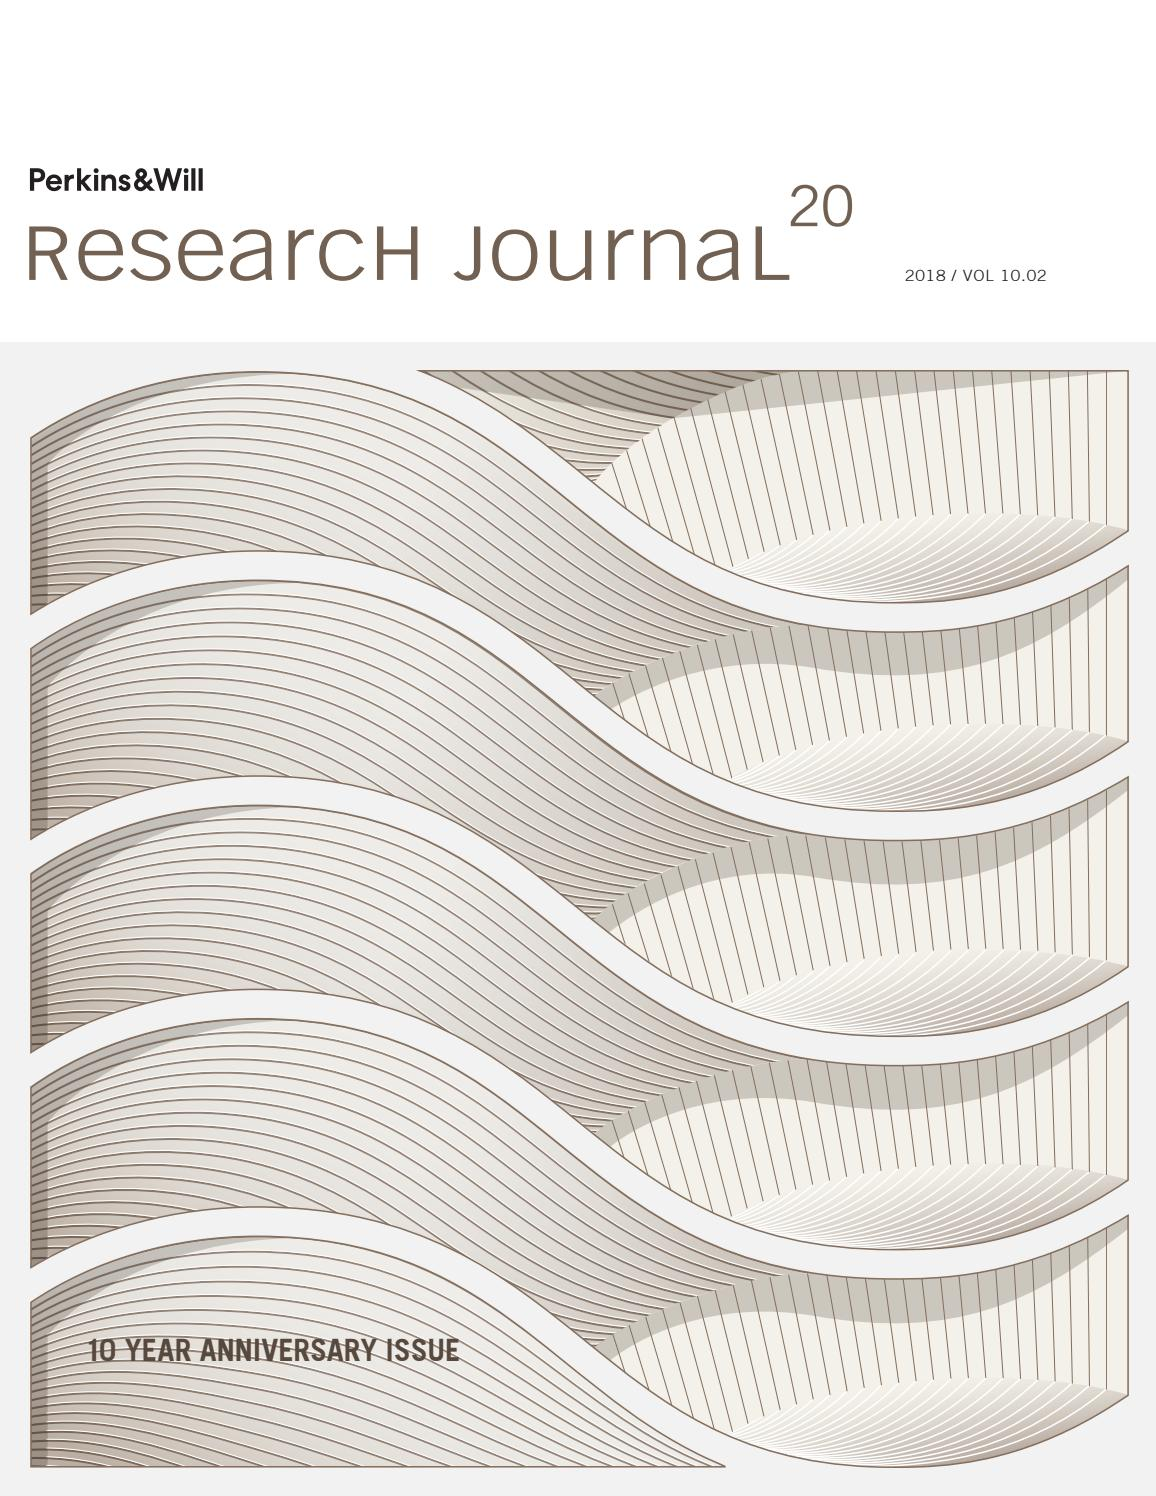 Research Journal: Vol  10 02 by Perkins and Will - issuu